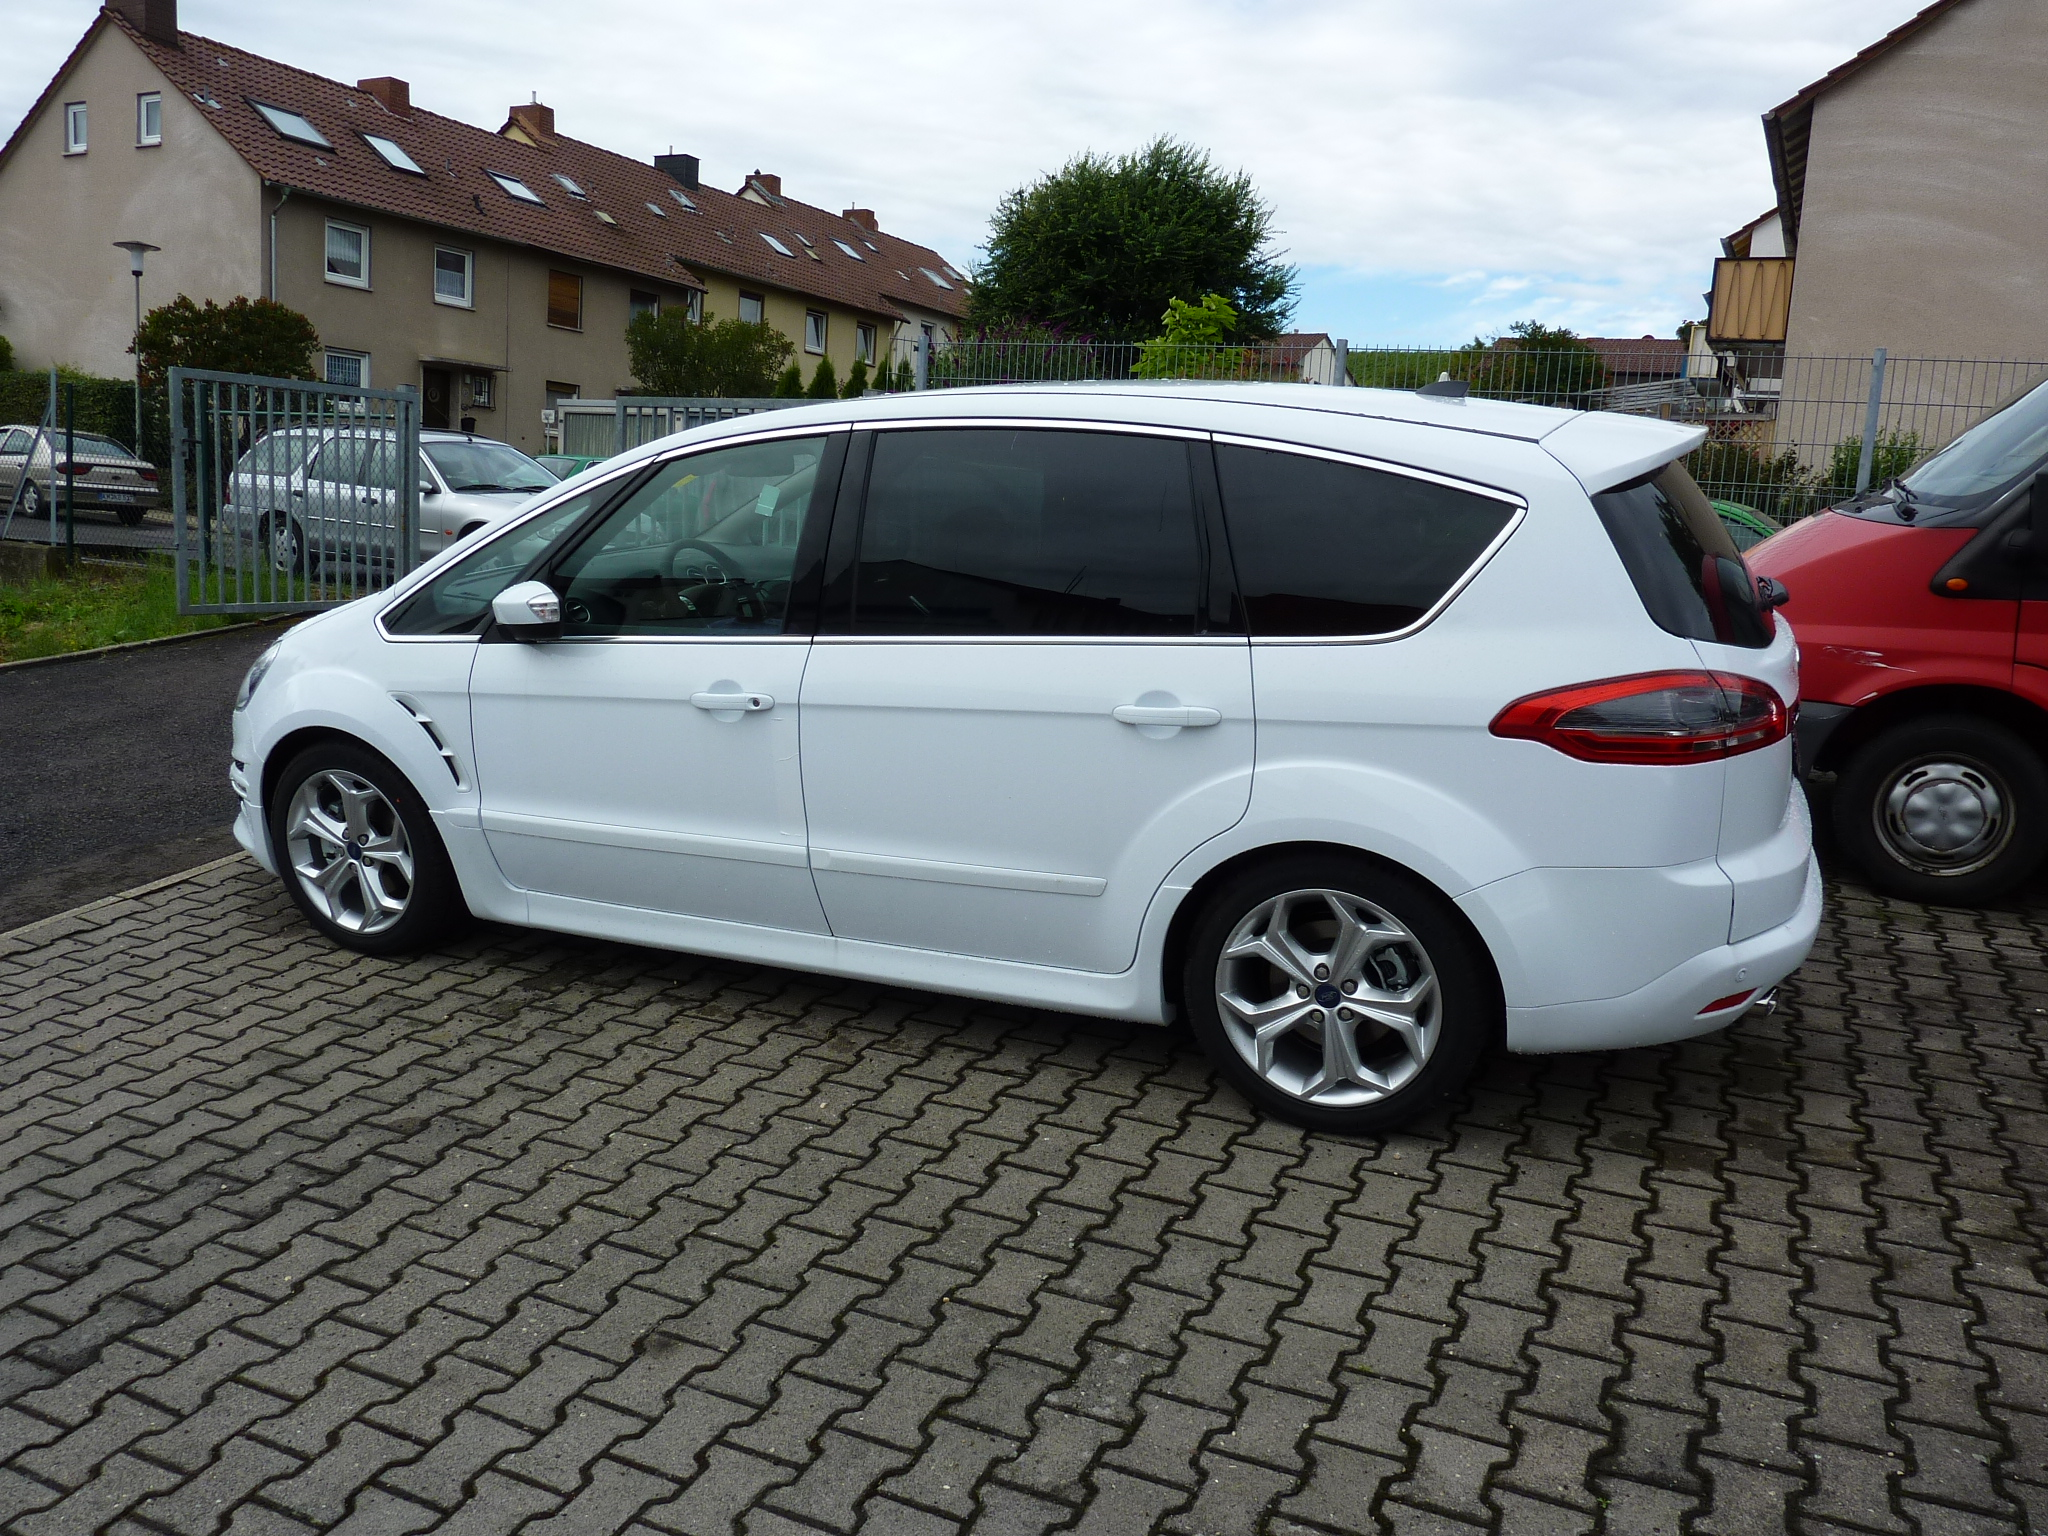 Ford S-Max 2.2 2011 photo - 2